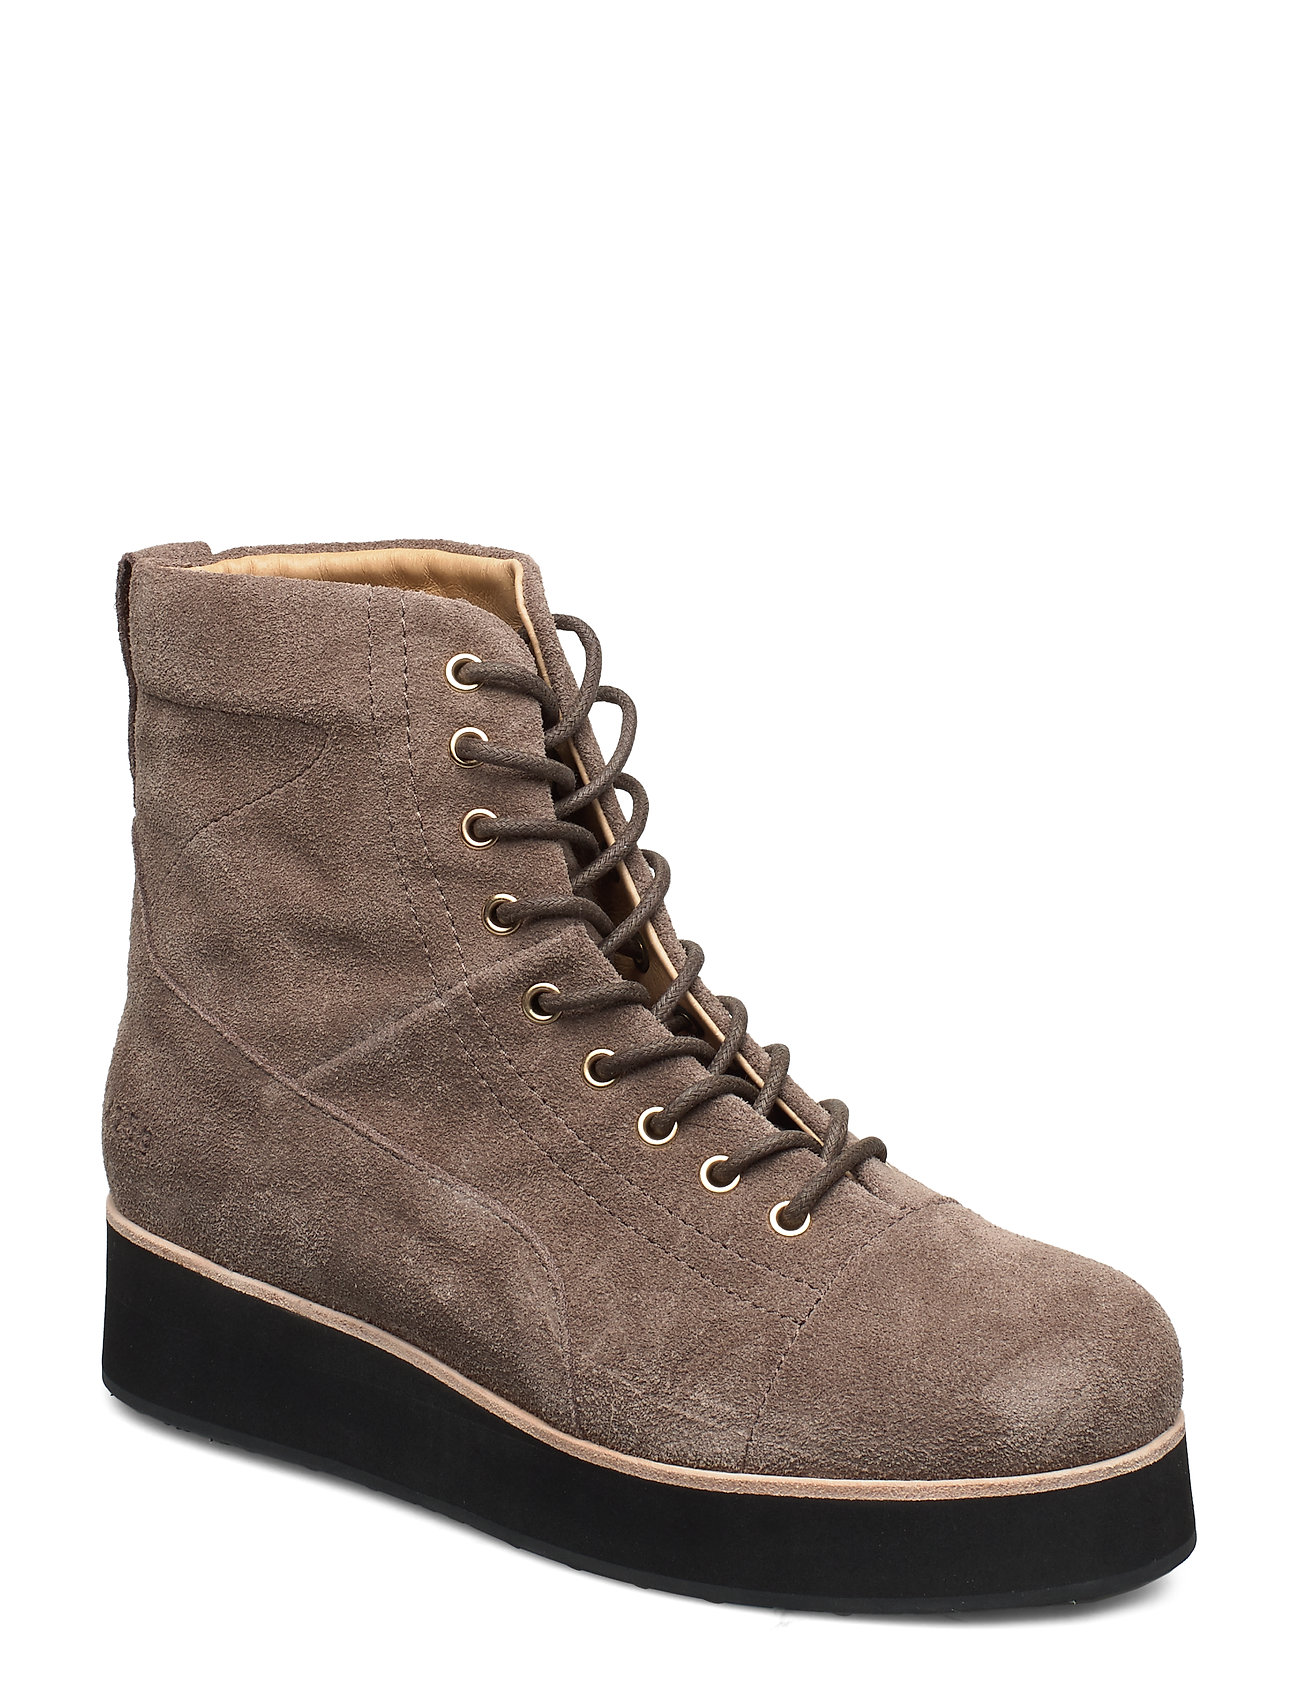 Image of 425g Walnut Suede Shoes Boots Ankle Boots Ankle Boot - Flat Brun Gram (3406234515)